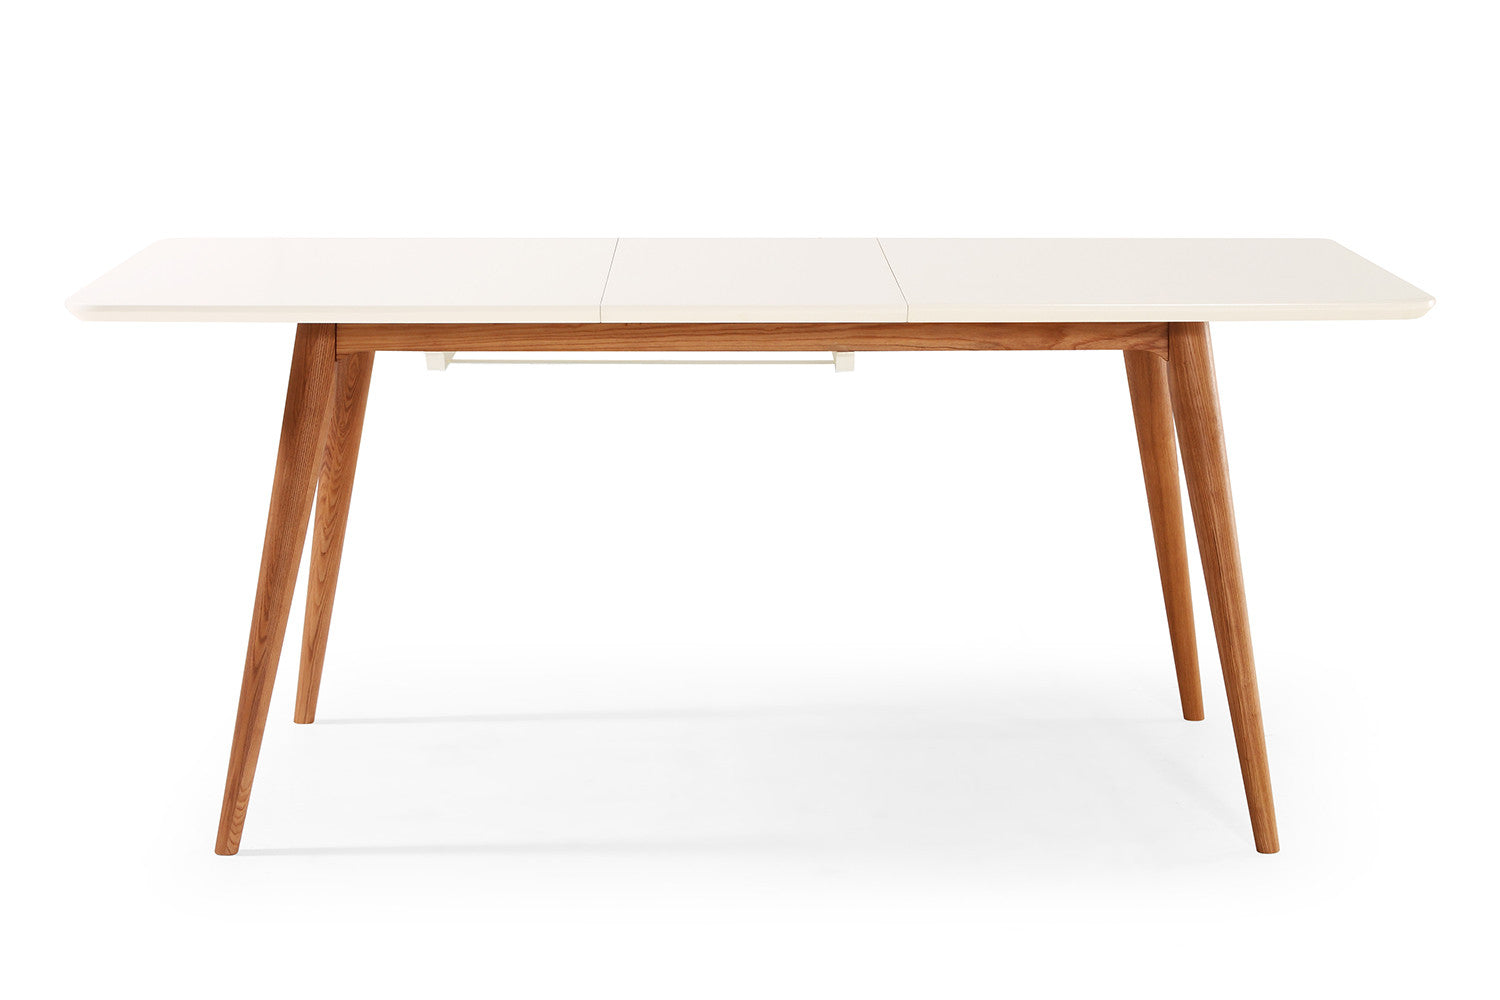 Table de salle manger extensible scandinave wyna dewarens for Table salle manger ronde extensible design